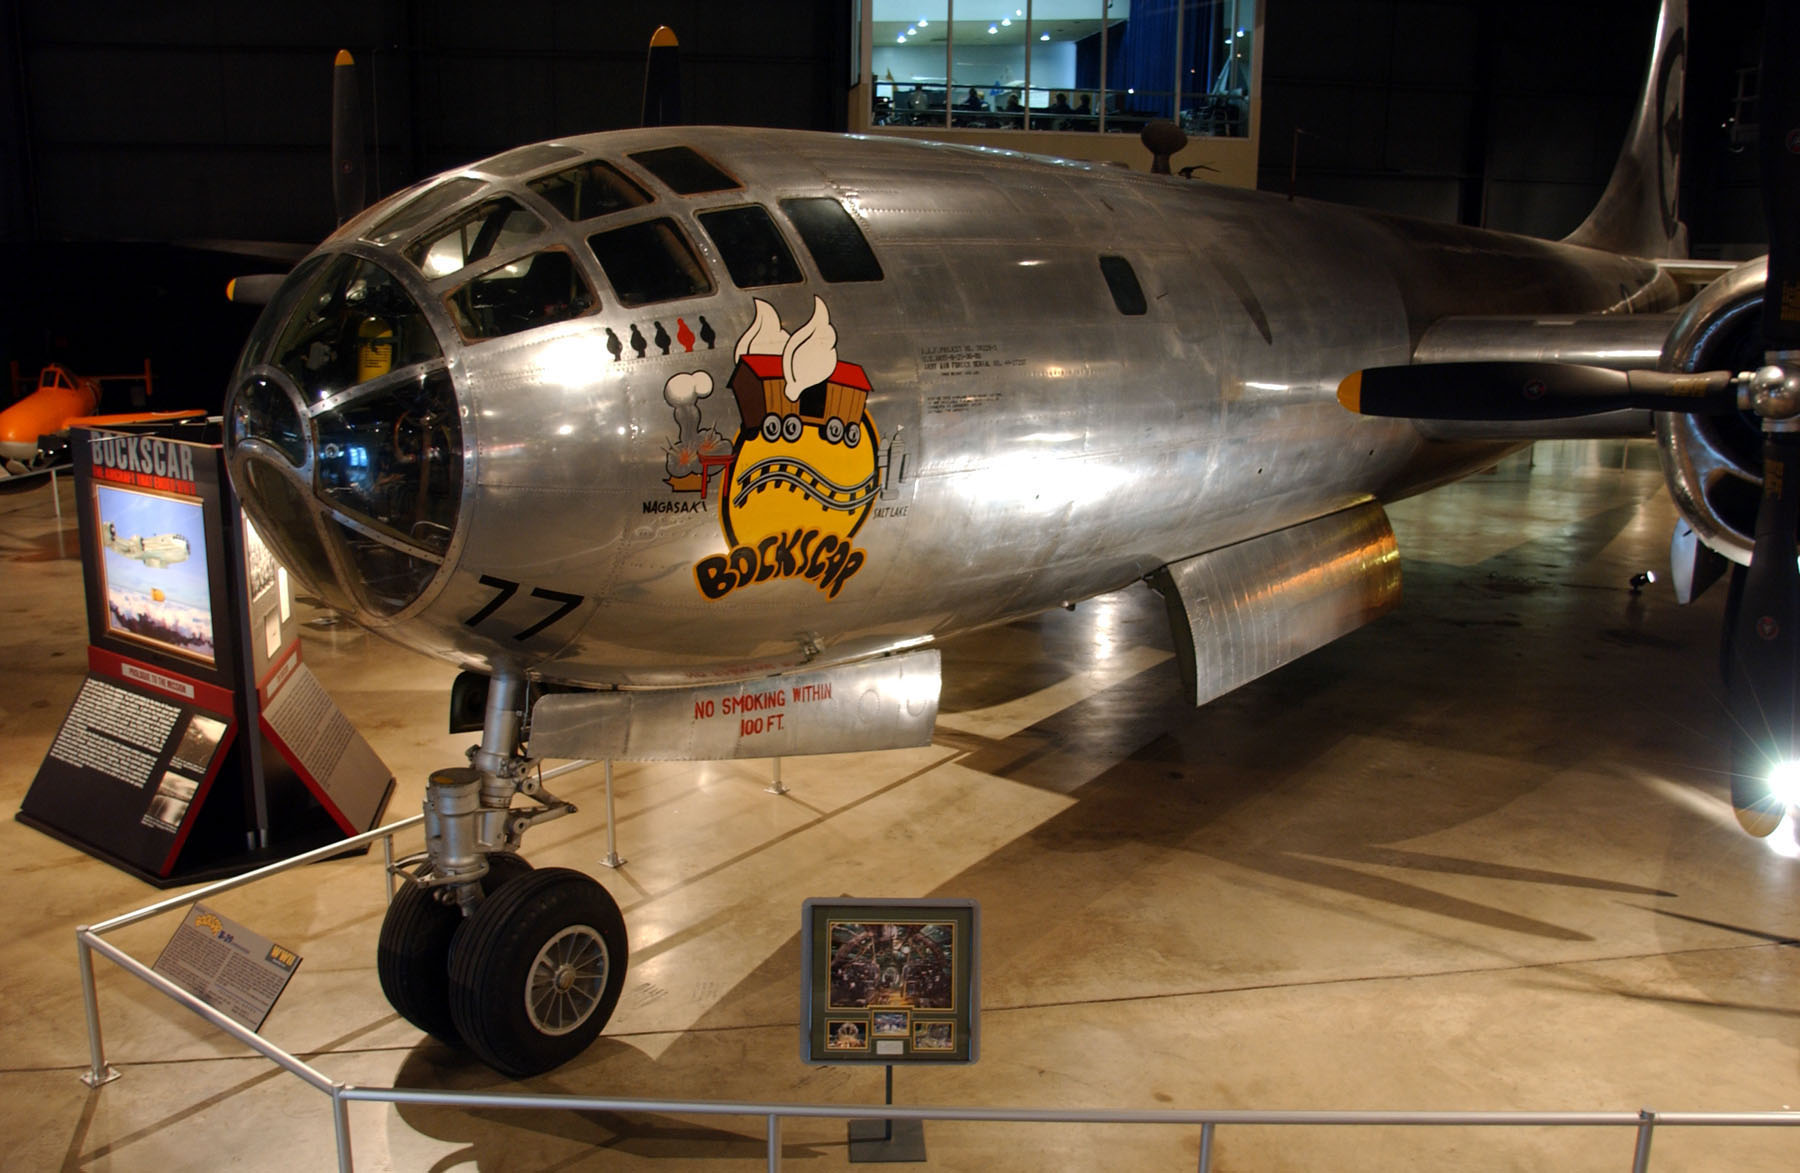 Boeing B Superfortress  National Museum Of The US Air Force - Military museums in us